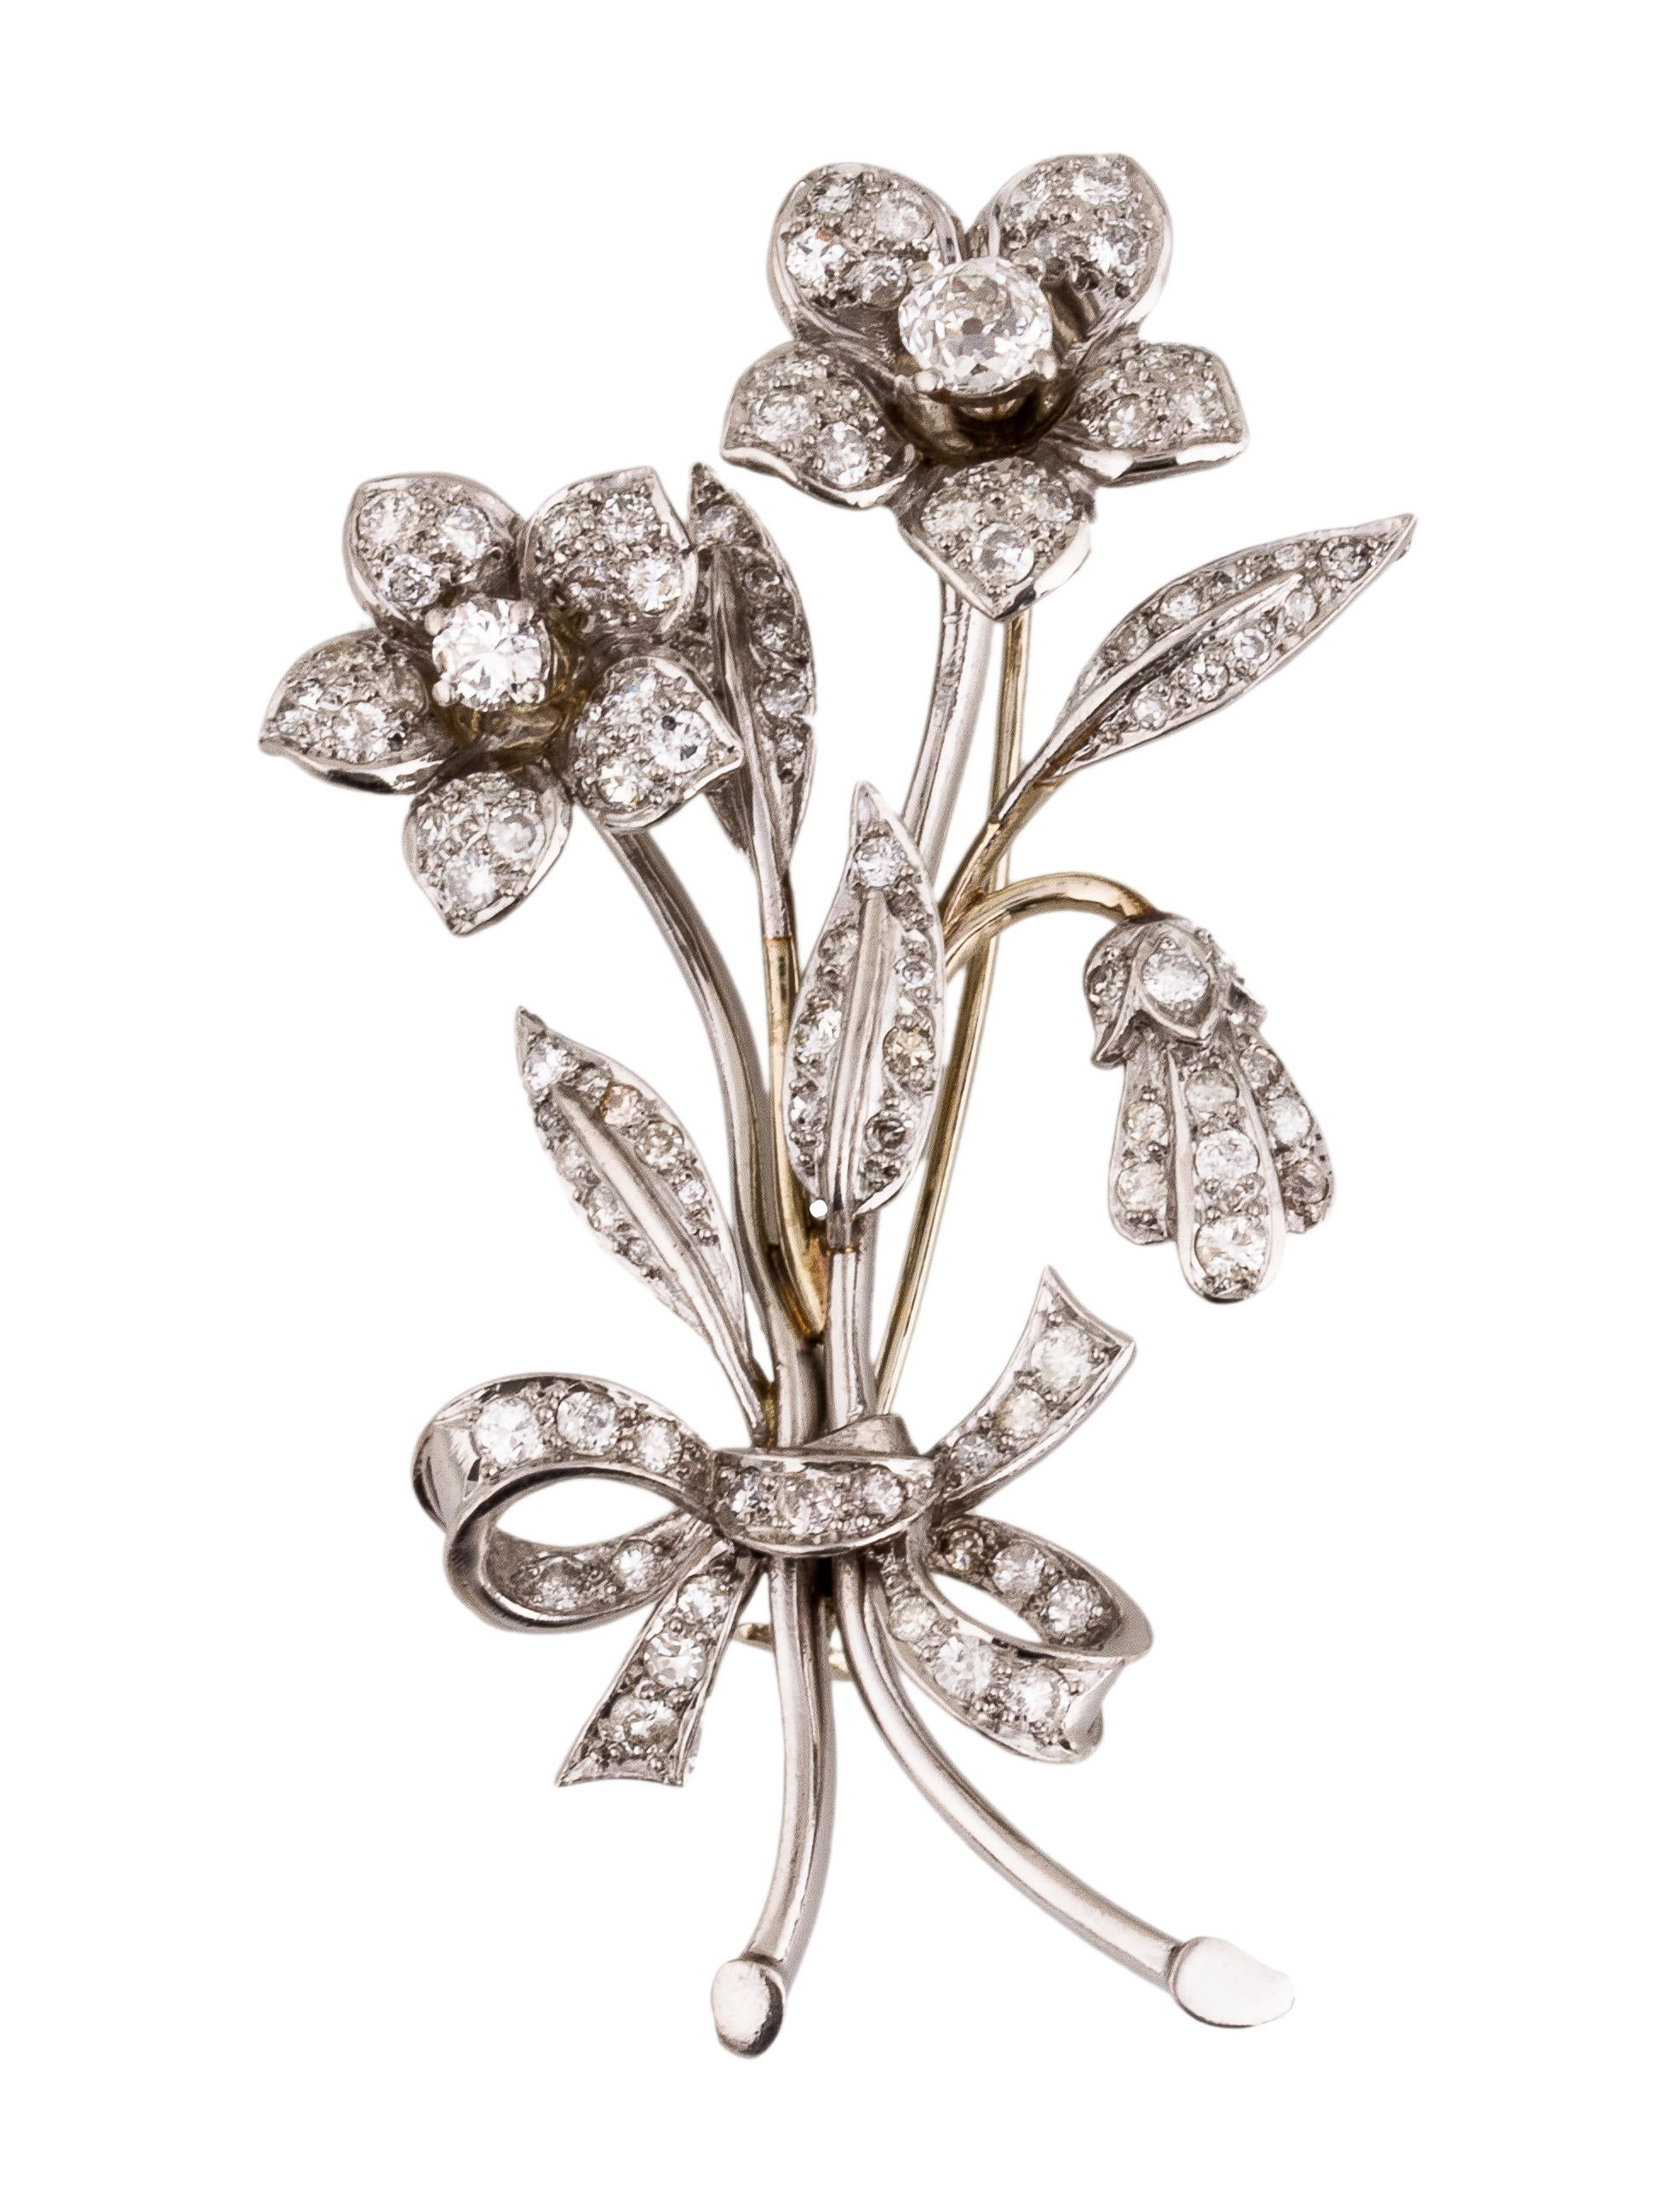 Antique Diamond Flower Bouquet Brooch Brooches Brooc21169 The